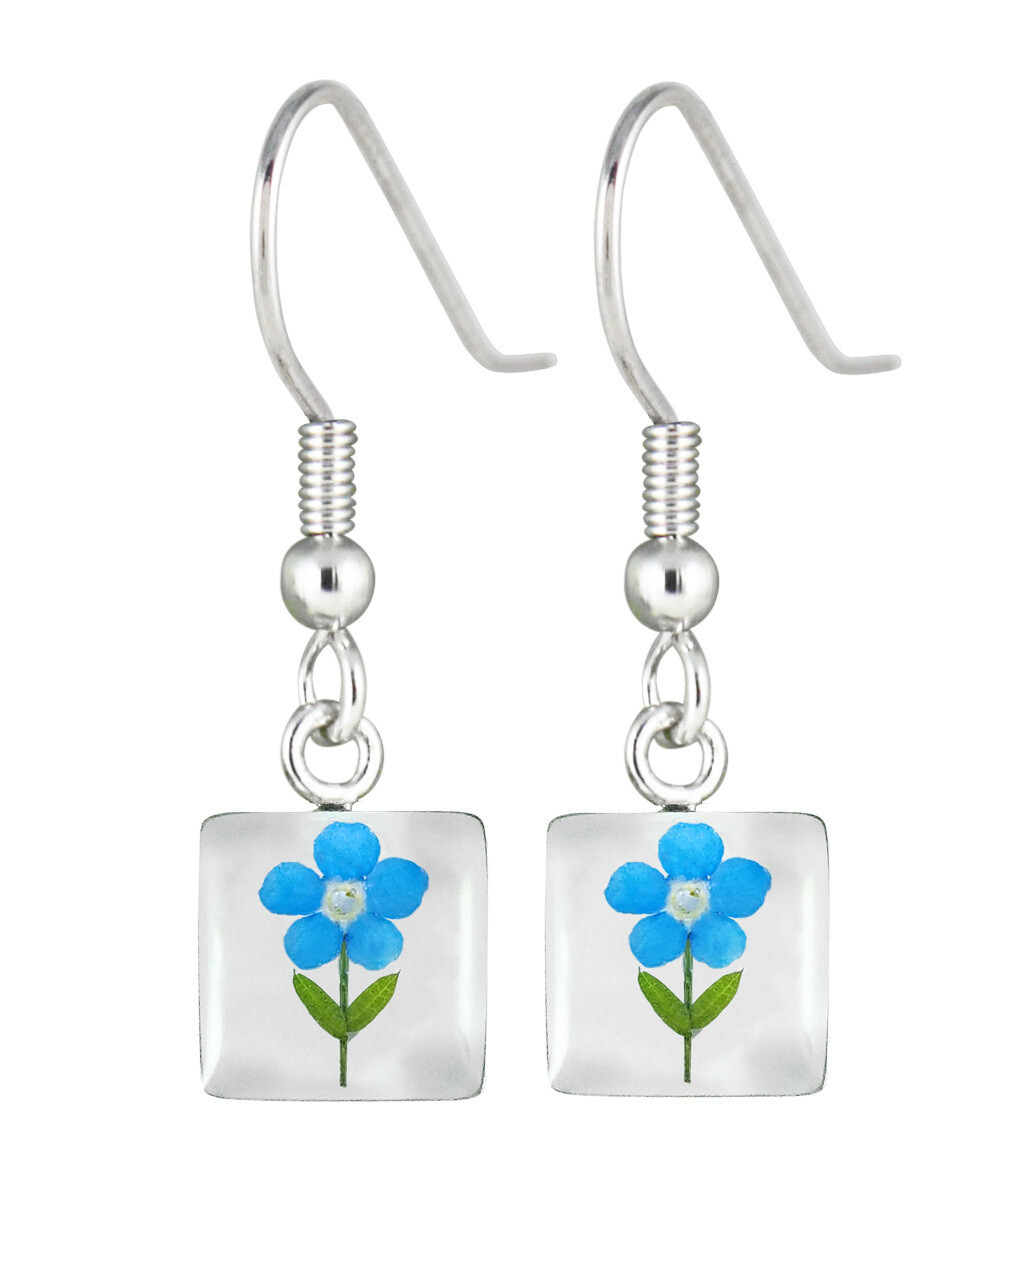 Forget-Me-Not, Mini Square Earrings, White Background